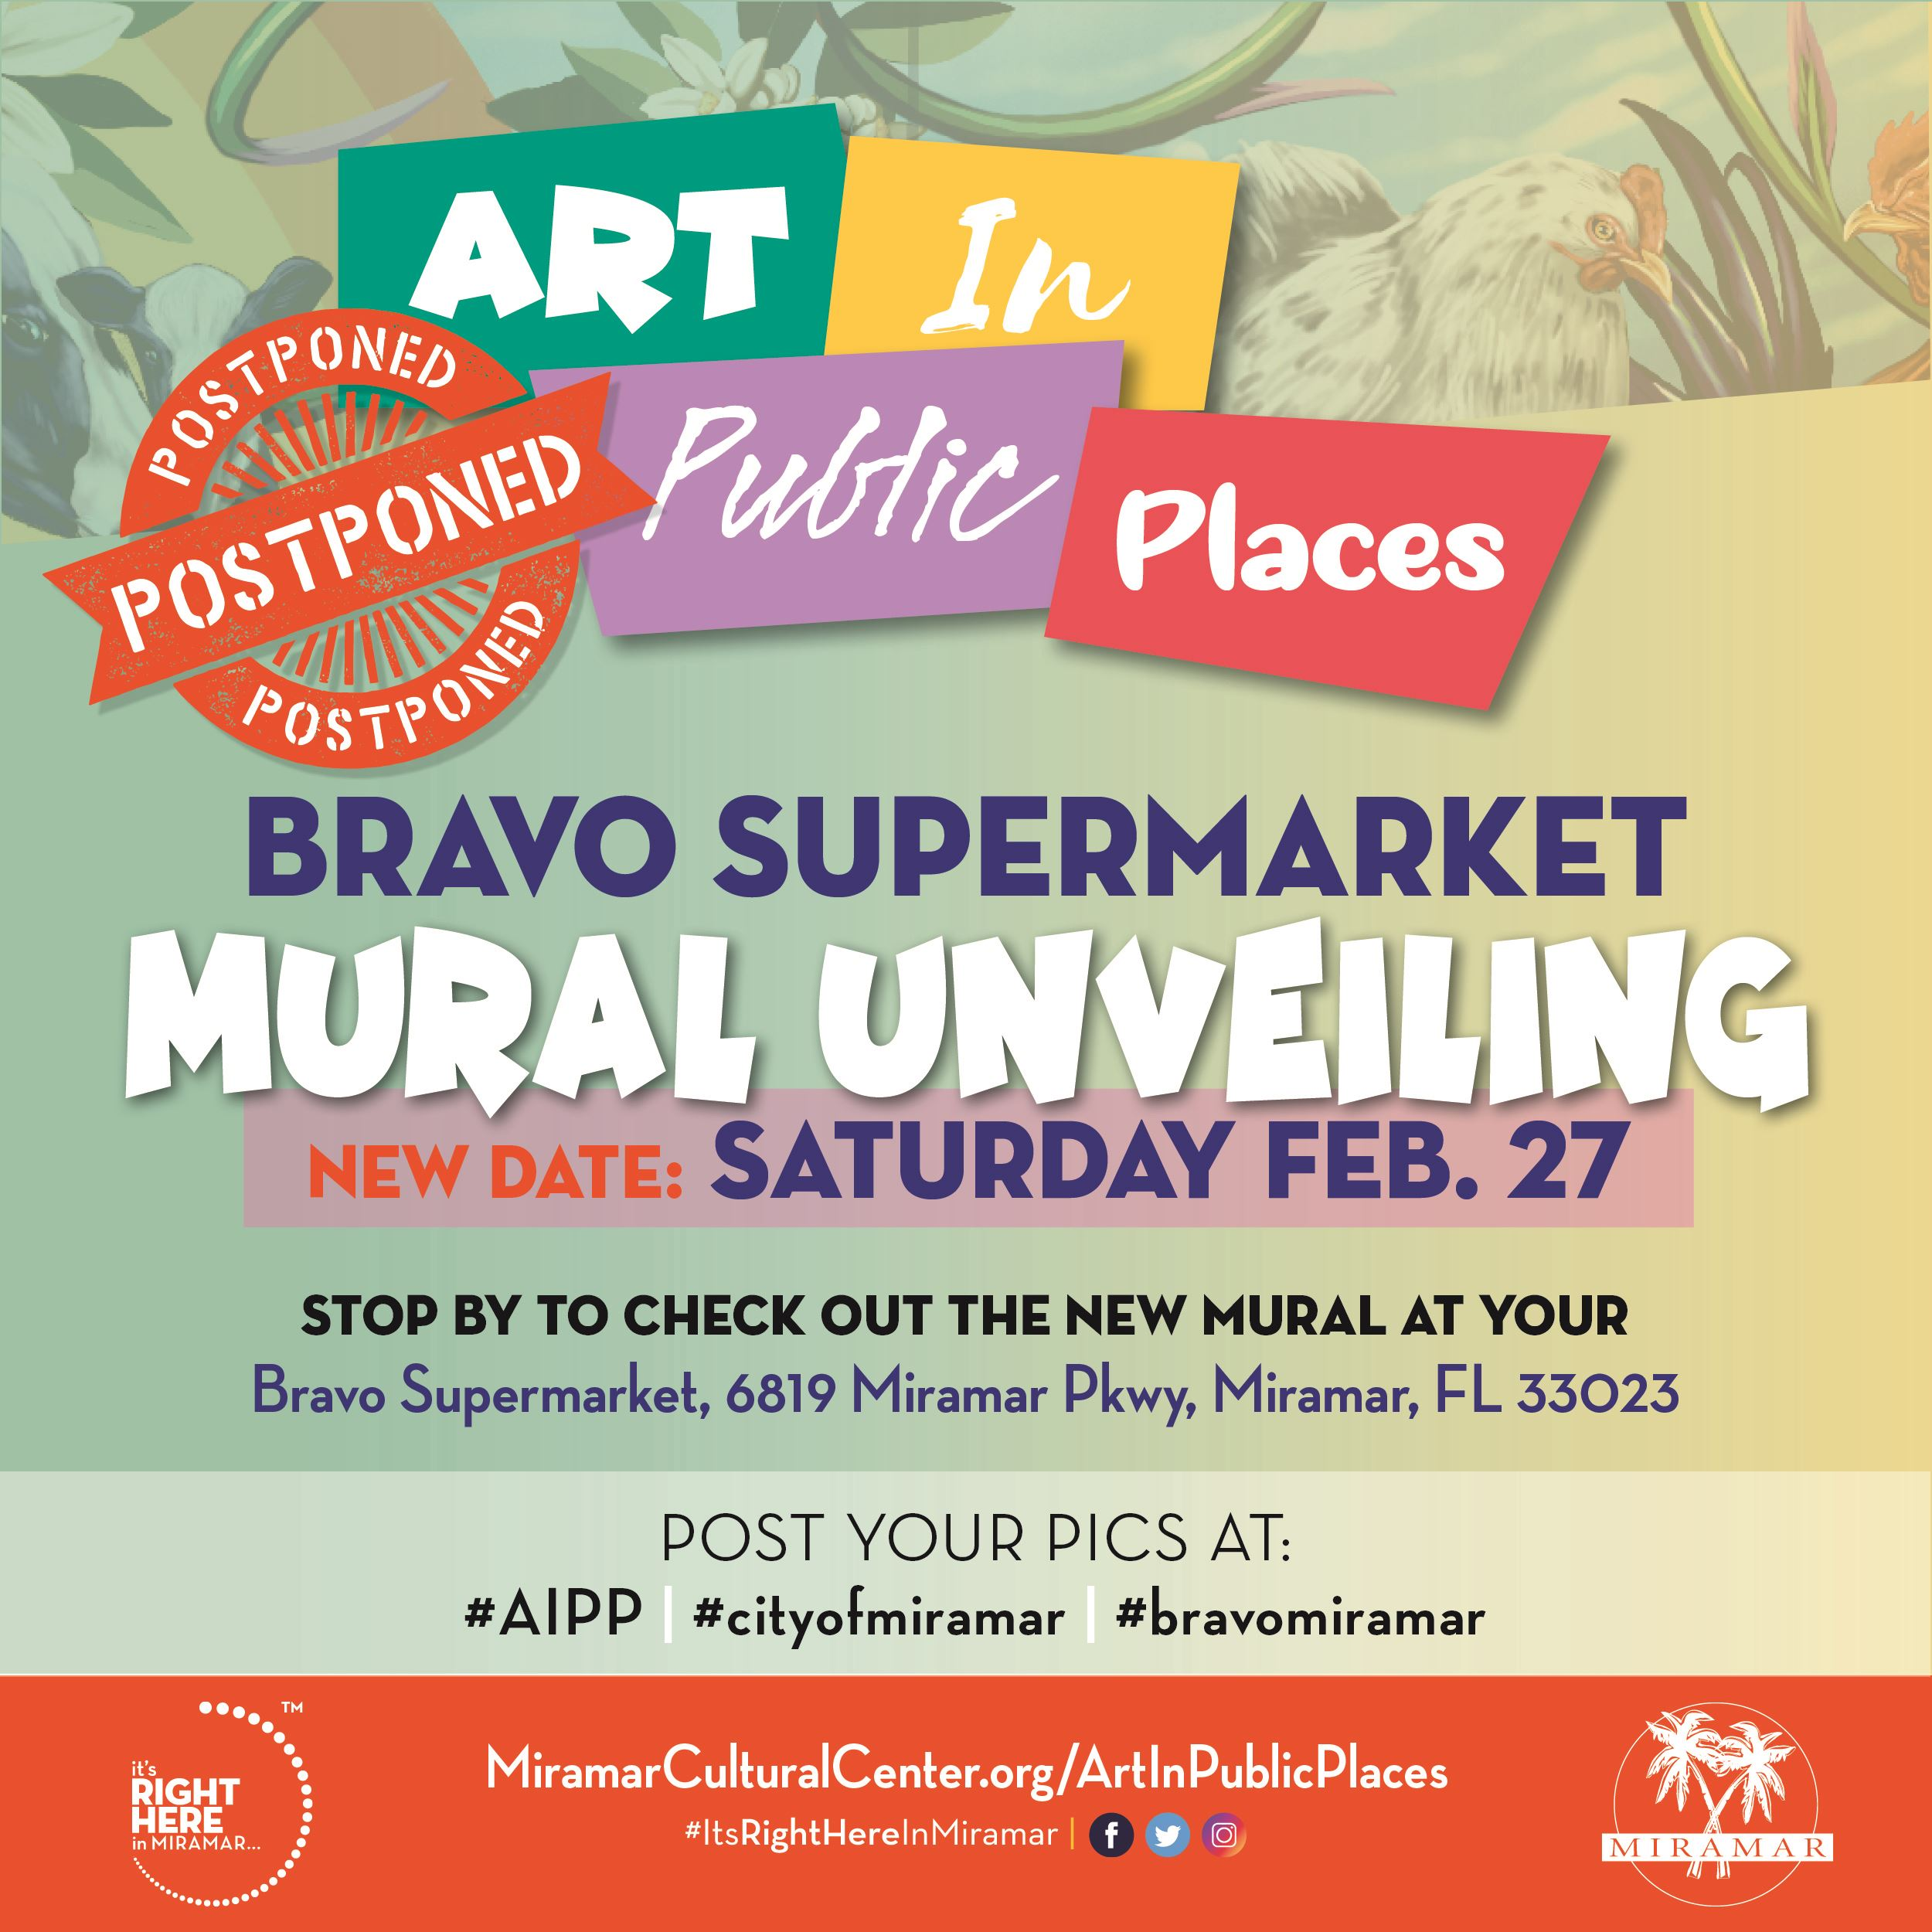 Commissioner Davis Art in Public Places Bravo Mural Postponed